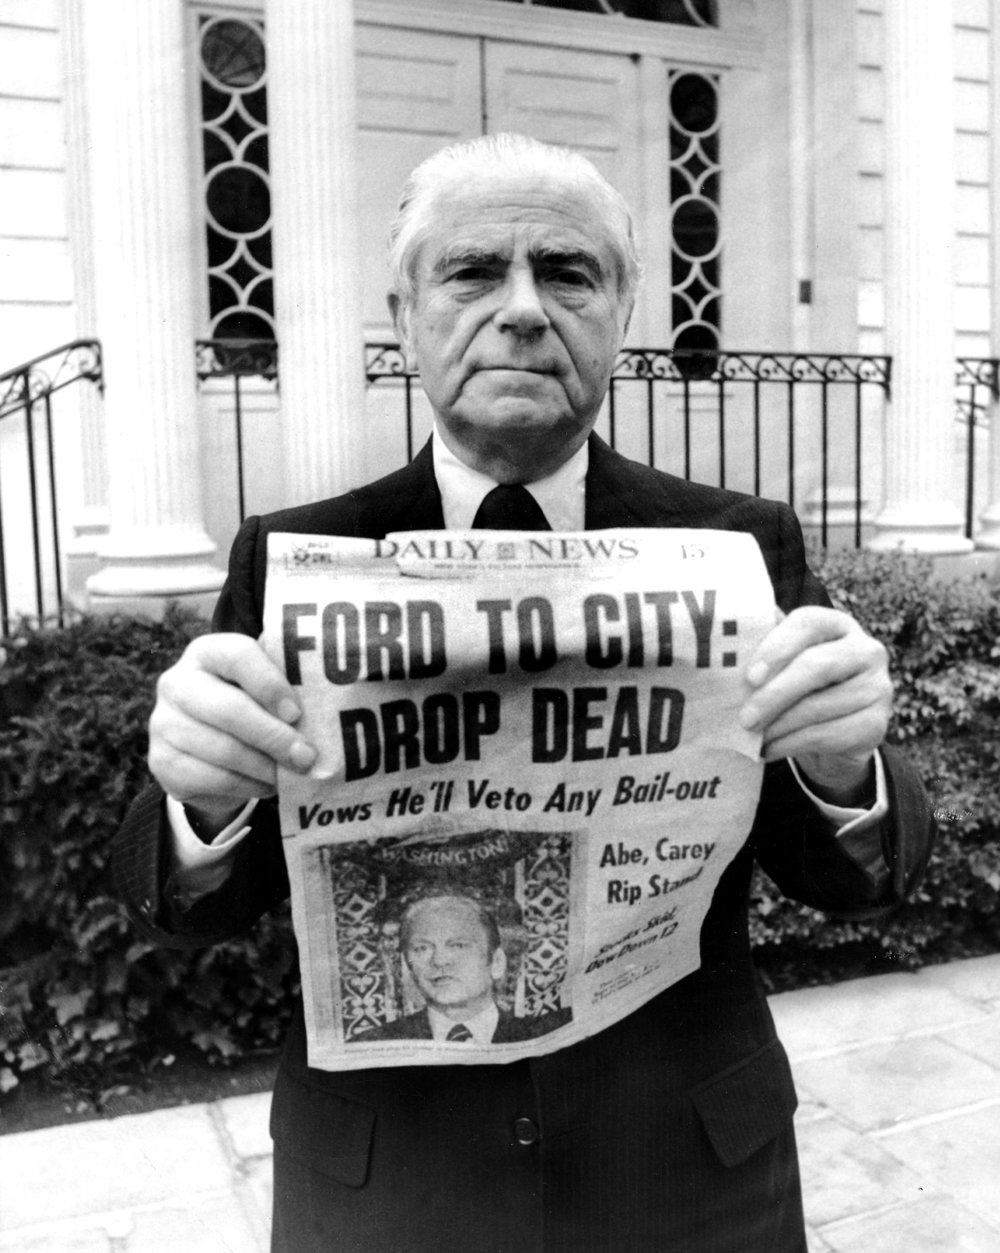 """In 1975, New York City was at the brink of financial collapse. President Gerald Ford gave a speech saying that he would oppose any federal assistance to help save the City. """"Ford to City: Drop Dead"""" was the famous headline that ran on October 30th, 1975 in the New York Daily News, as shown here held by Abraham Beame, Mayor of New York City from 1974-1977. Credit: Getty Images"""